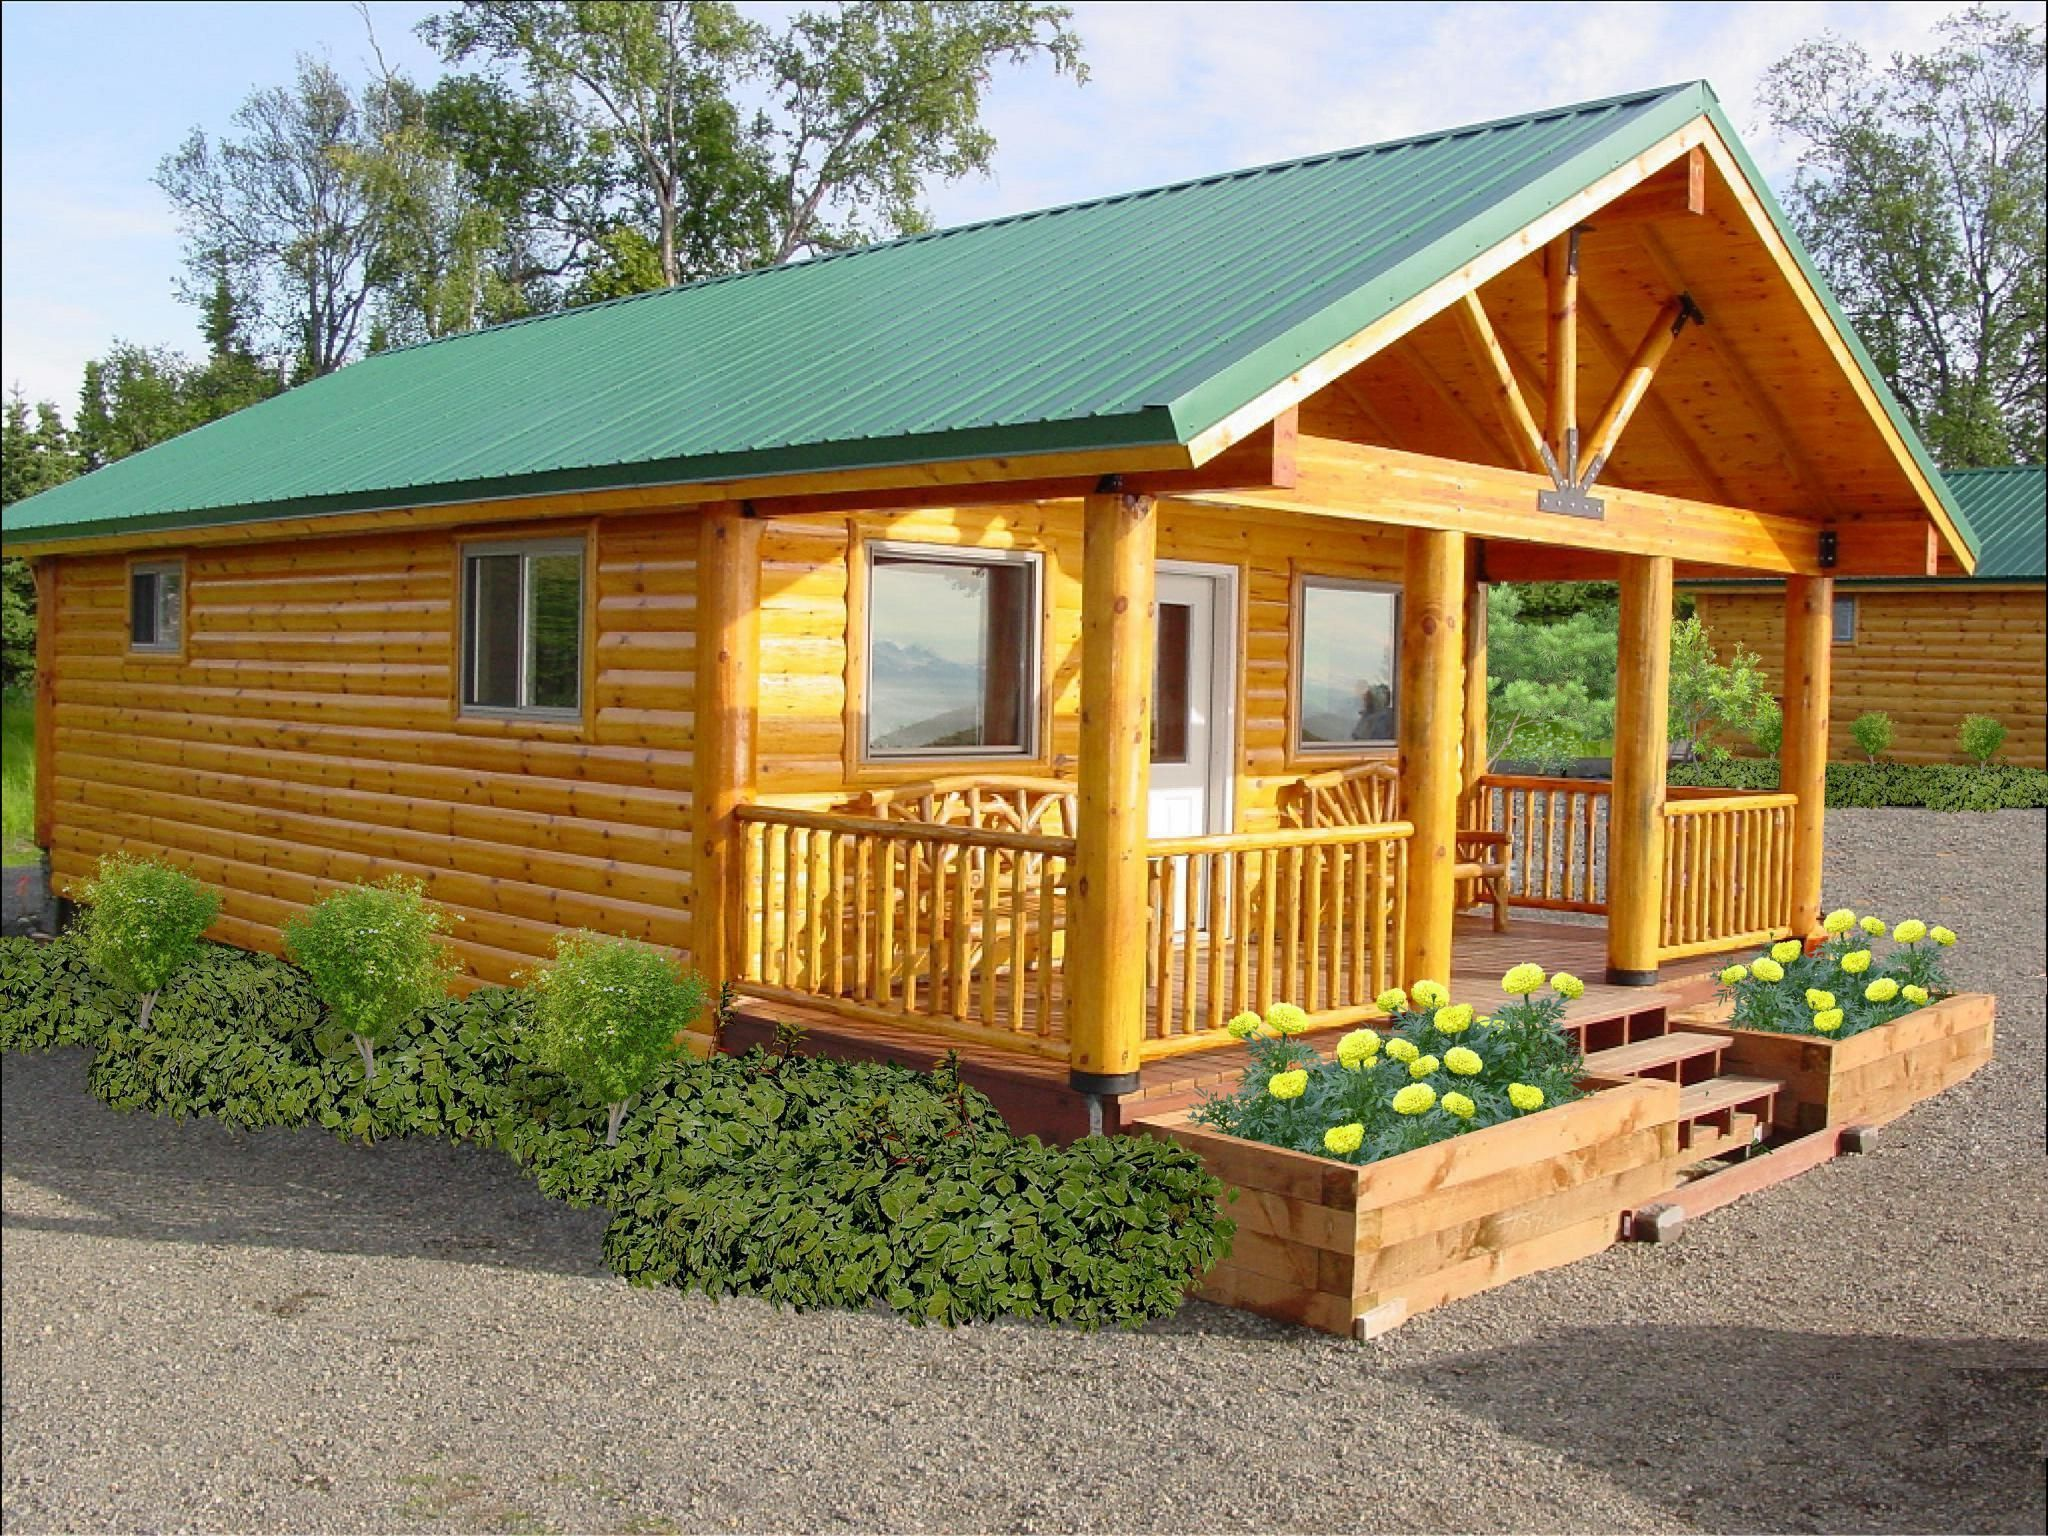 Knotty pine cottage from the small for Small modular cabins and cottages